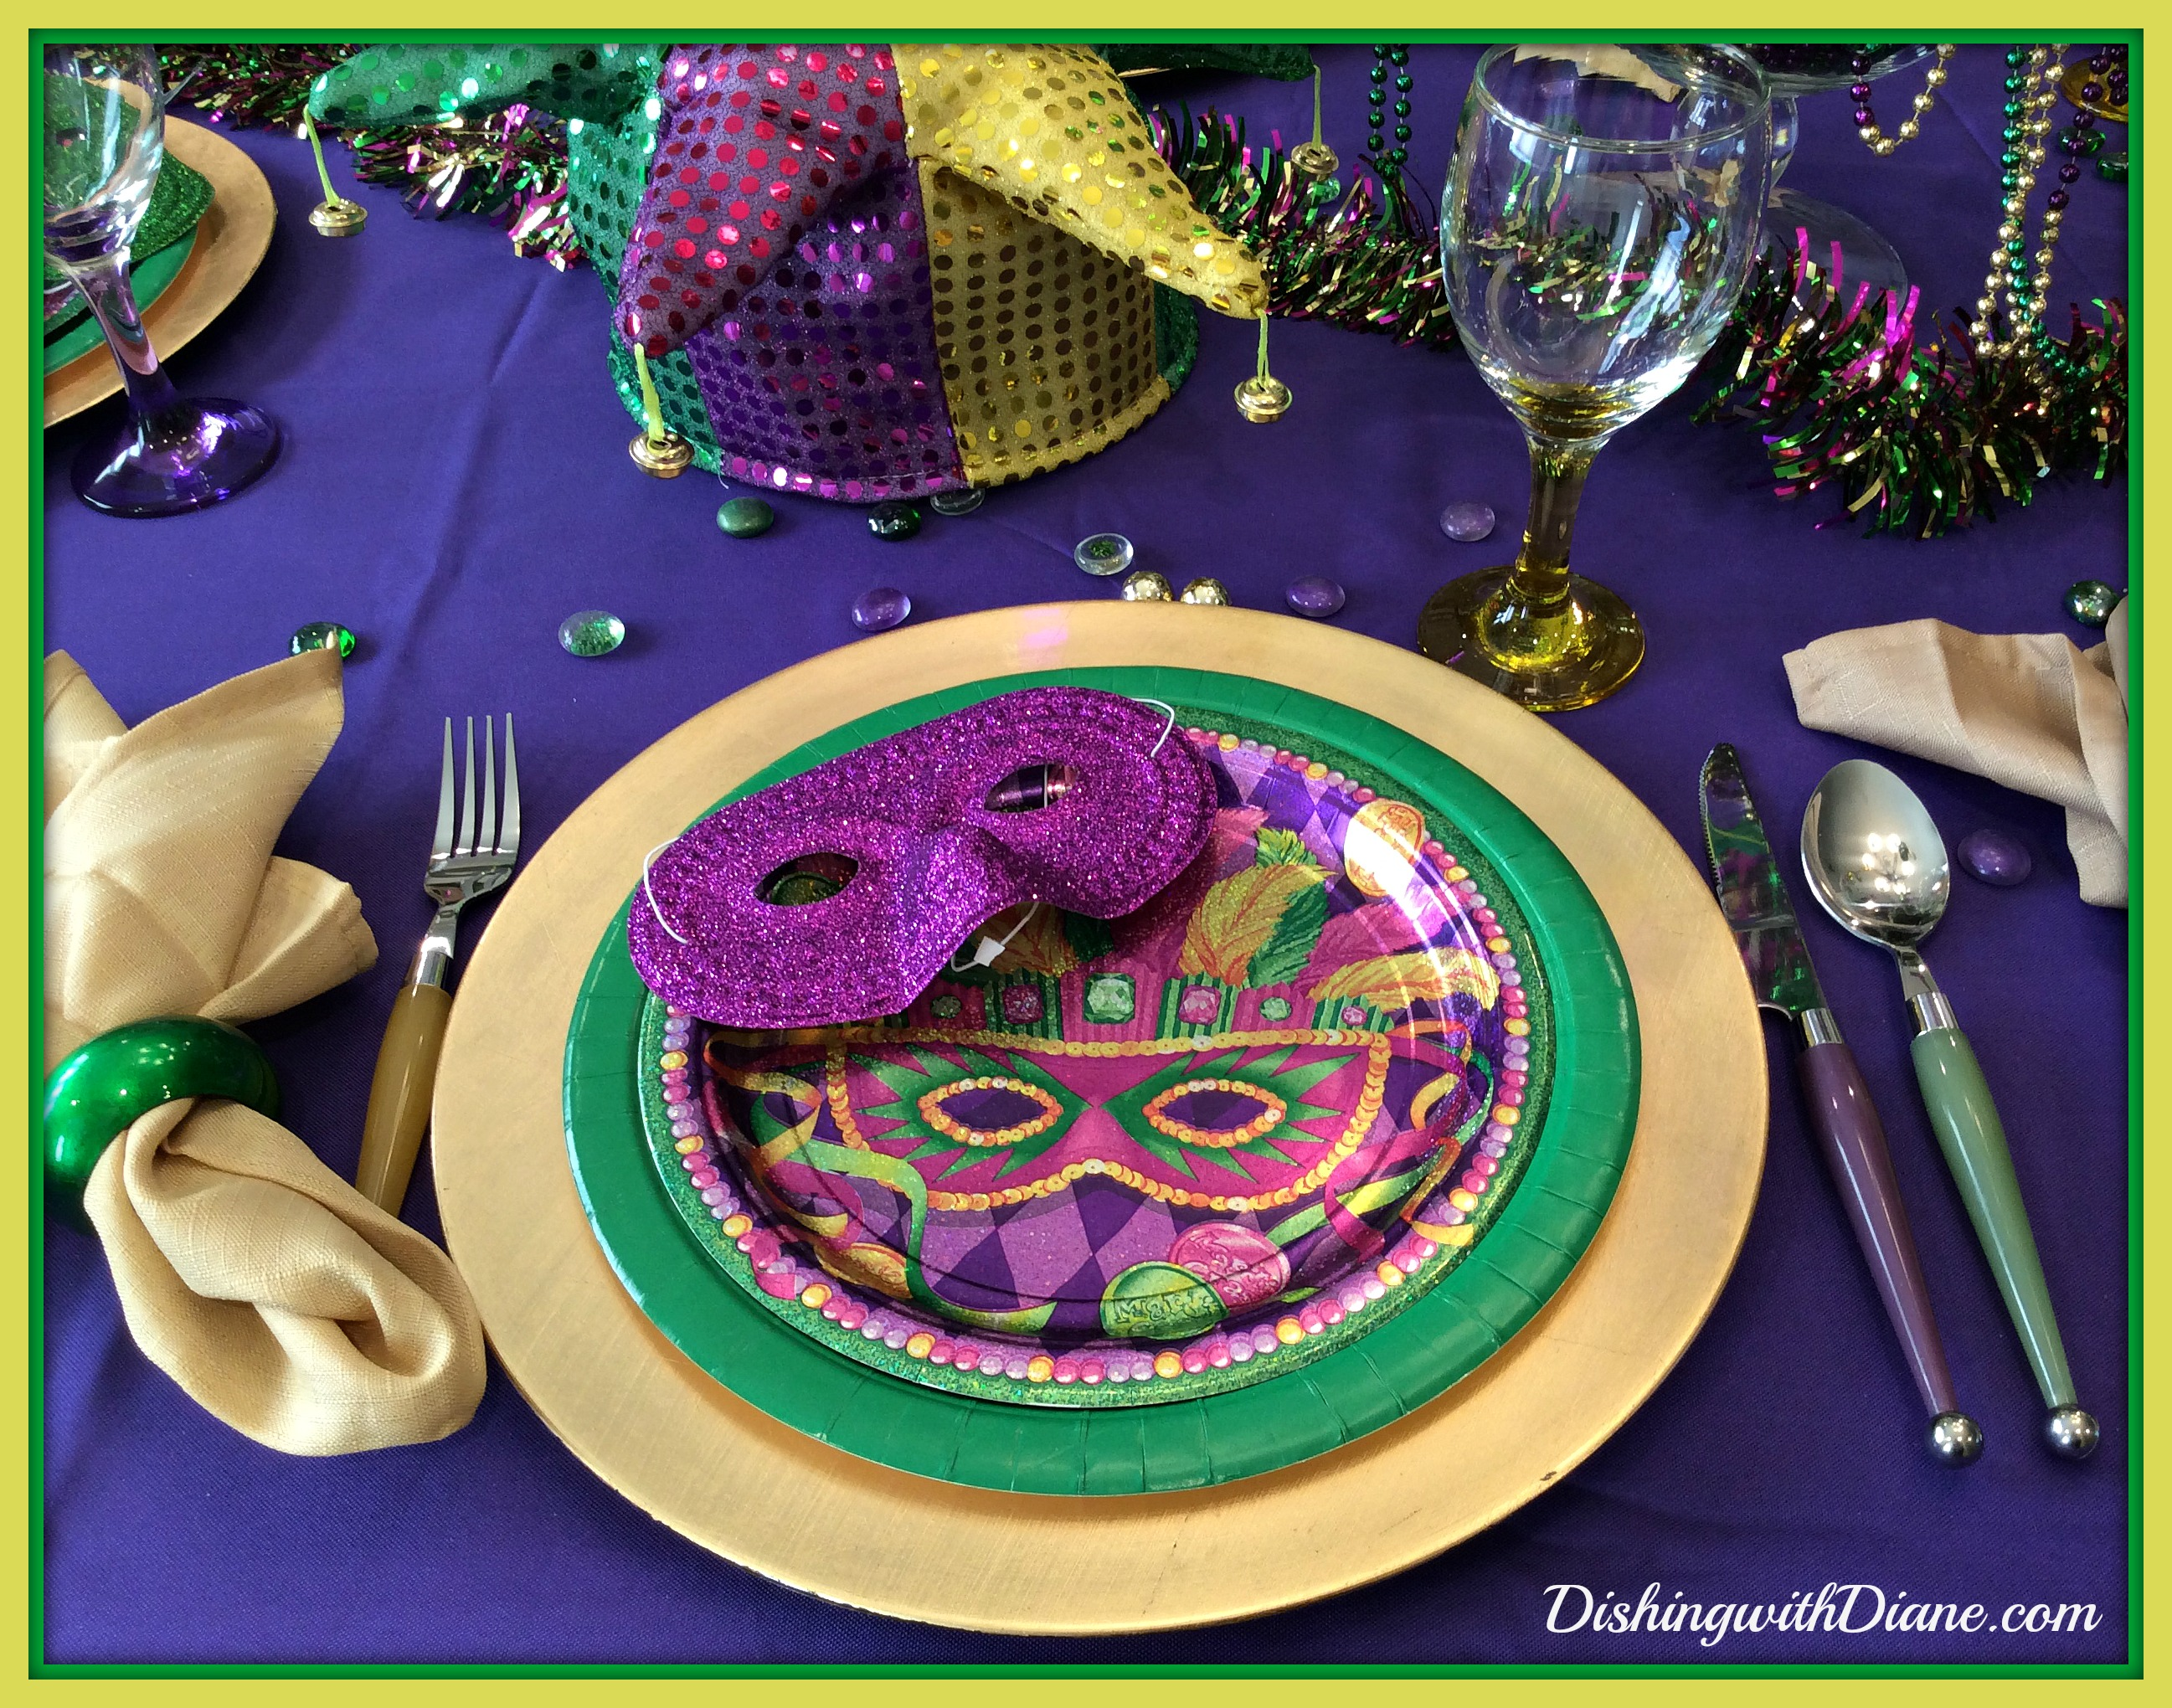 Mardi Gras Dishing With Diane. Mardi Gras Table Setting and Decorations  sc 1 st  Best Image Engine & Amusing Mardi Gras Table Setting Photos - Best Image Engine ...